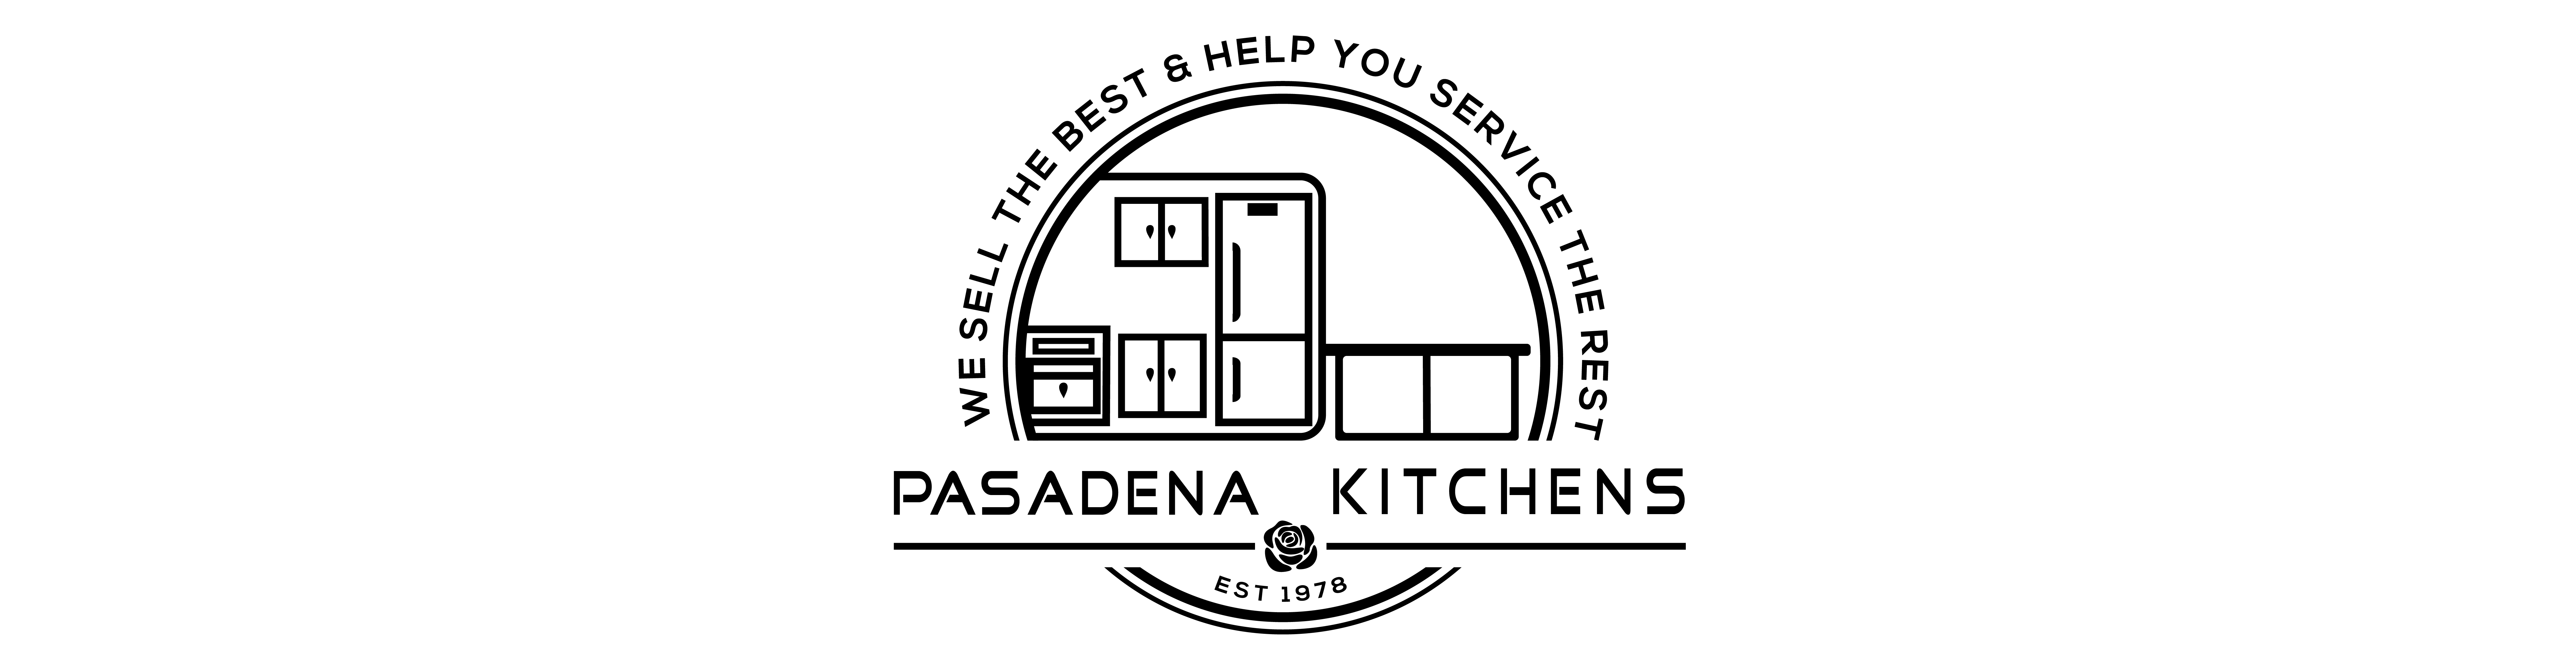 "Pasadena Kitchens, Inc. ""We sell the best & help you service the rest!"" Logo"